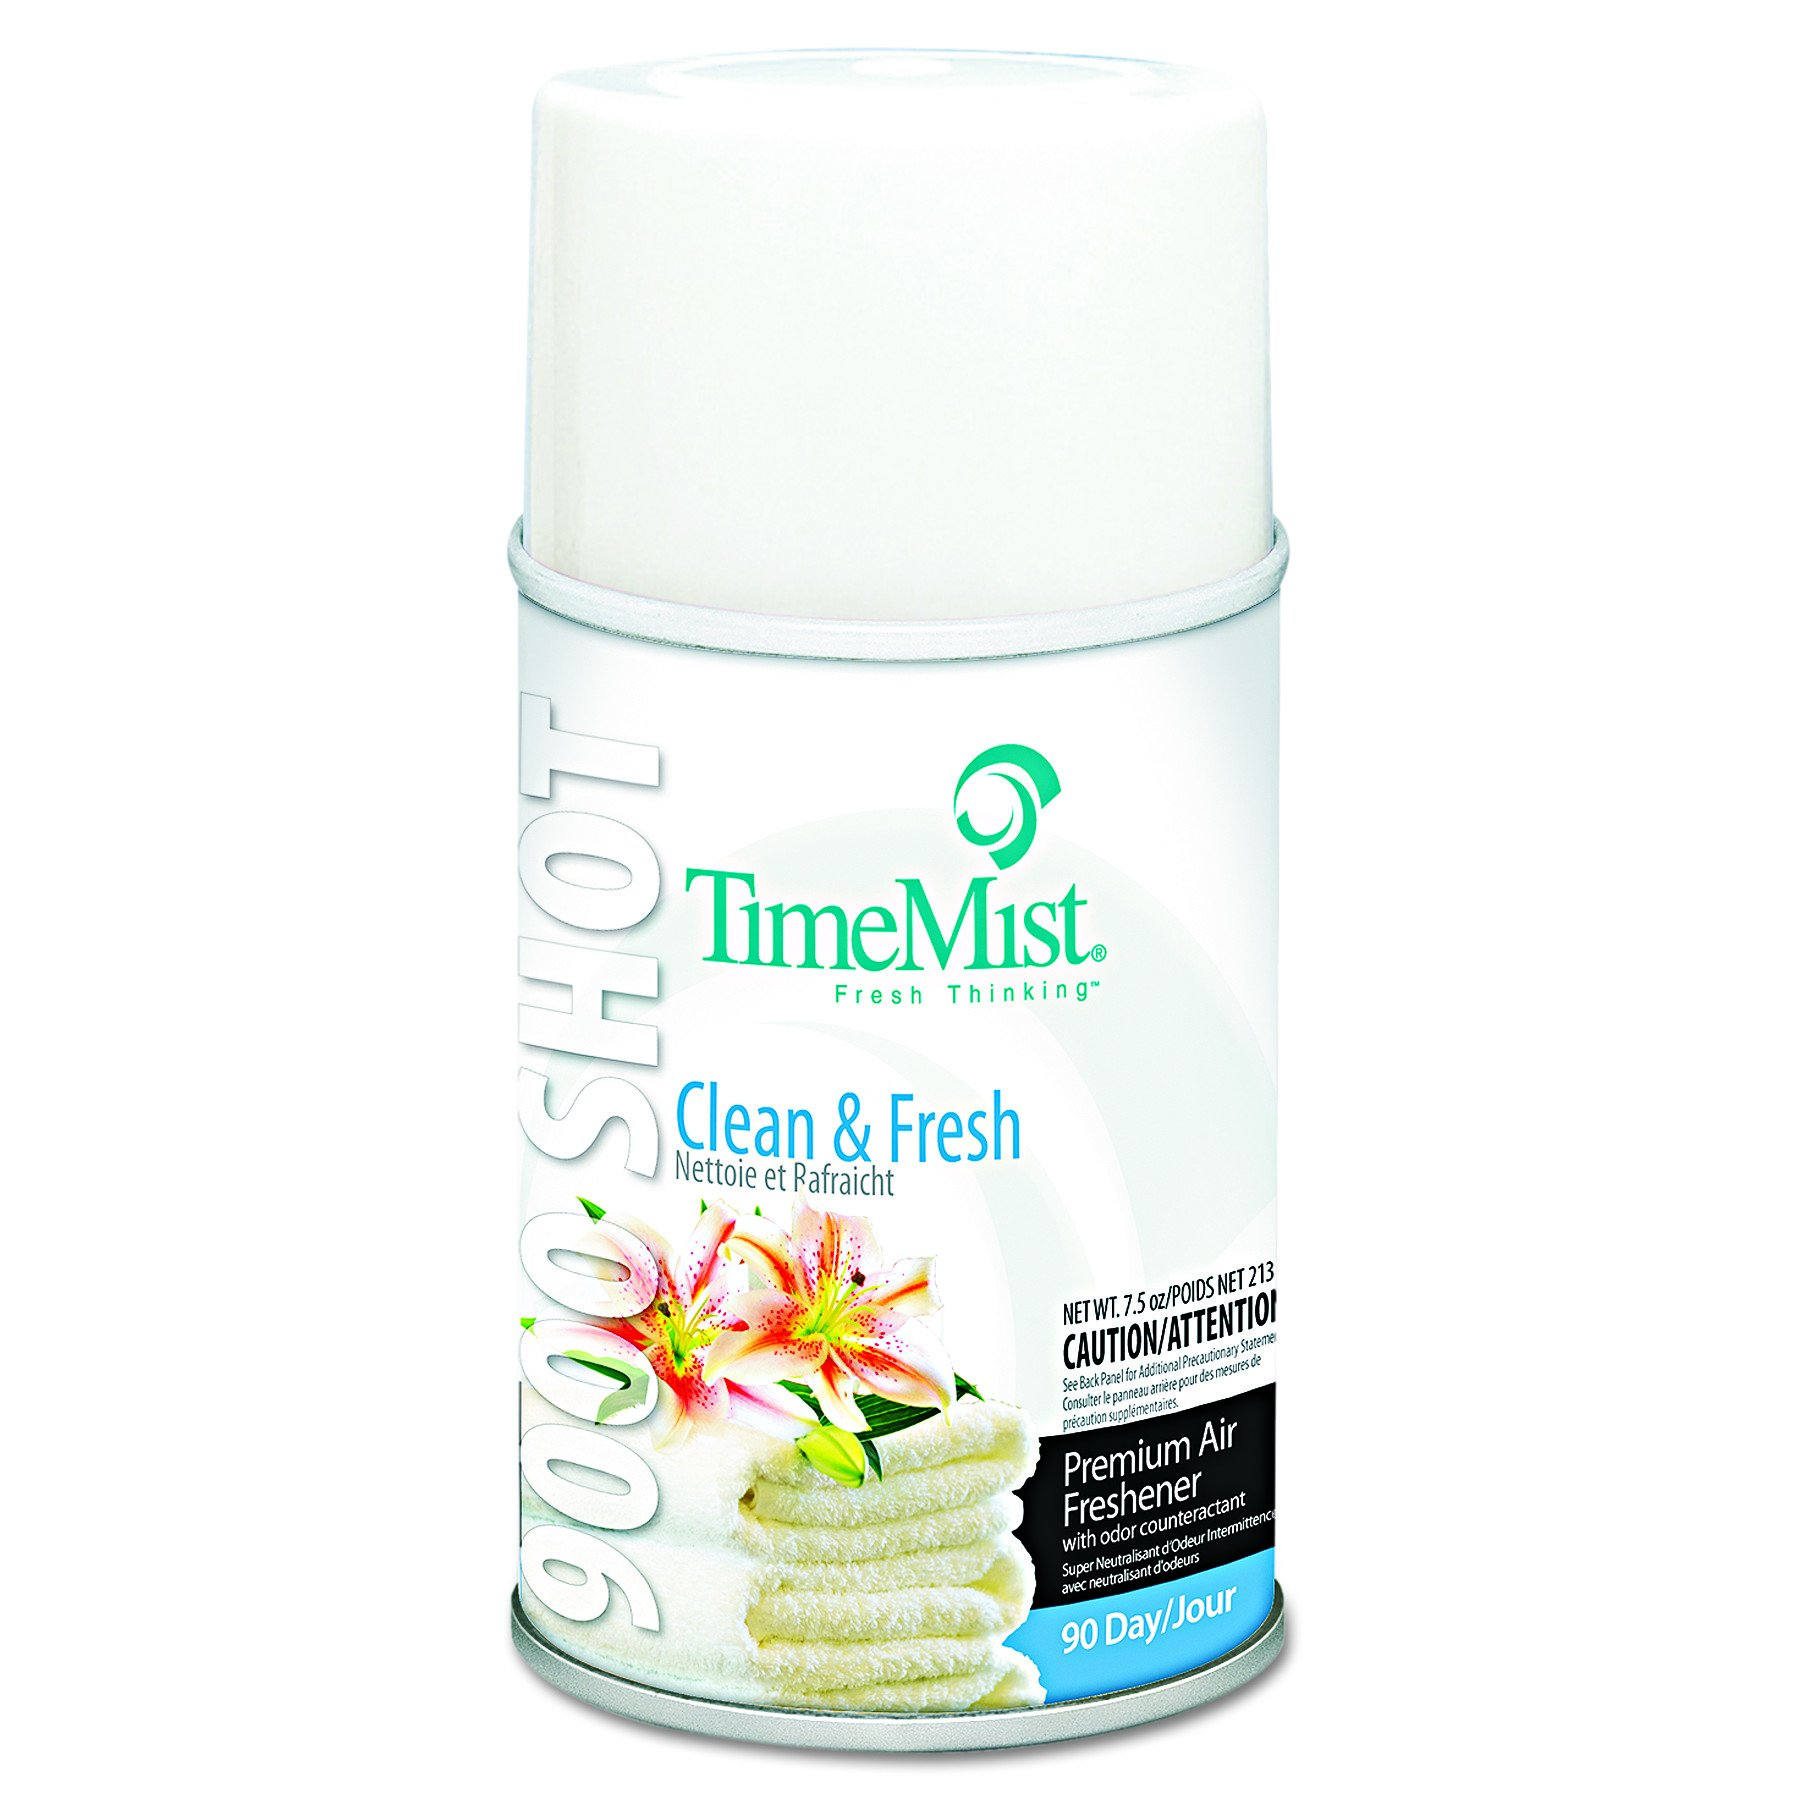 TimeMist 1042637 9000 Shot Metered Air Fresheners, Clean N' Fresh, 7.5 oz Aerosol (Case of 4)